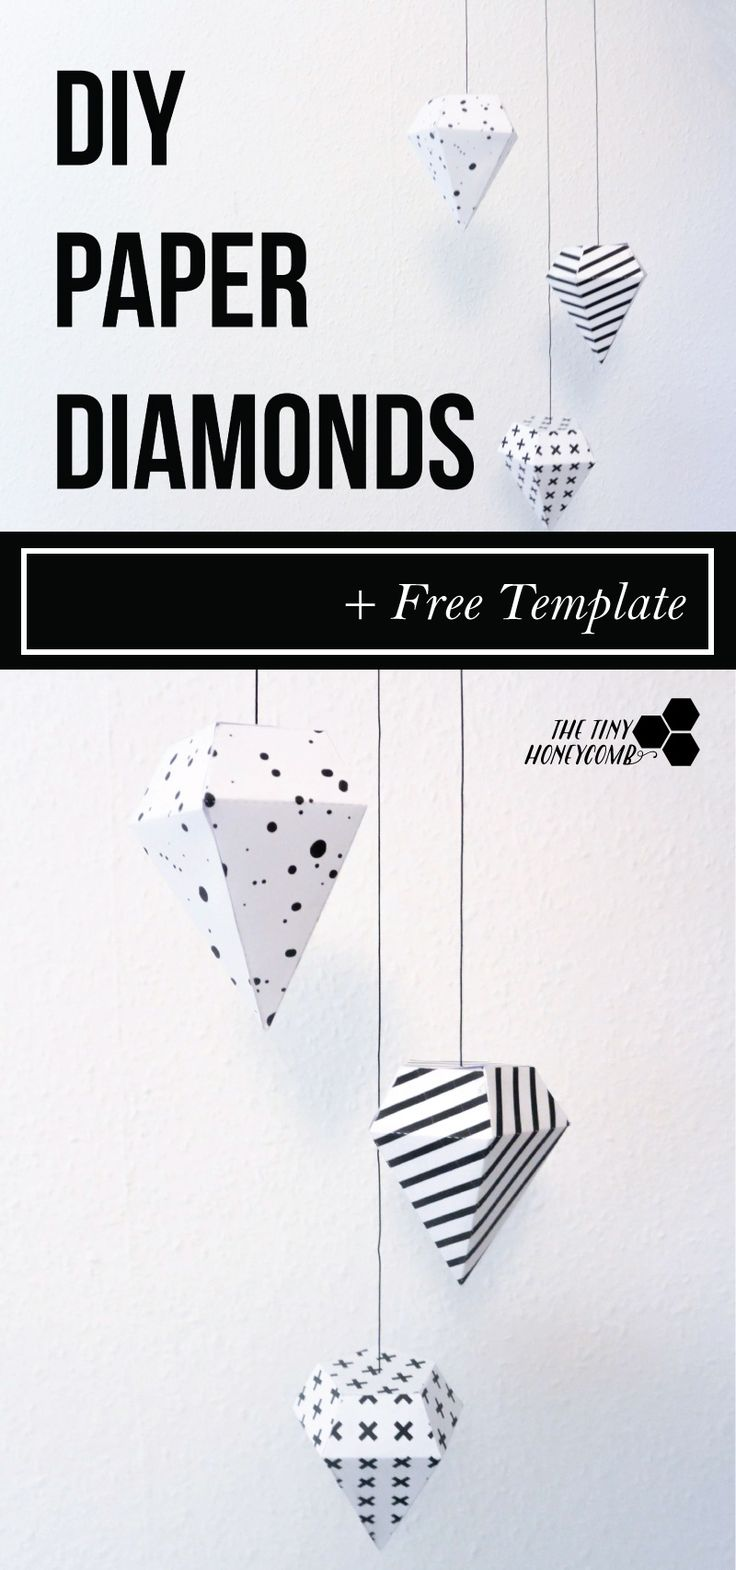 DIY paper diamond with a free template. Easy to make and pretty home decor. All you do is print, cut and glue.